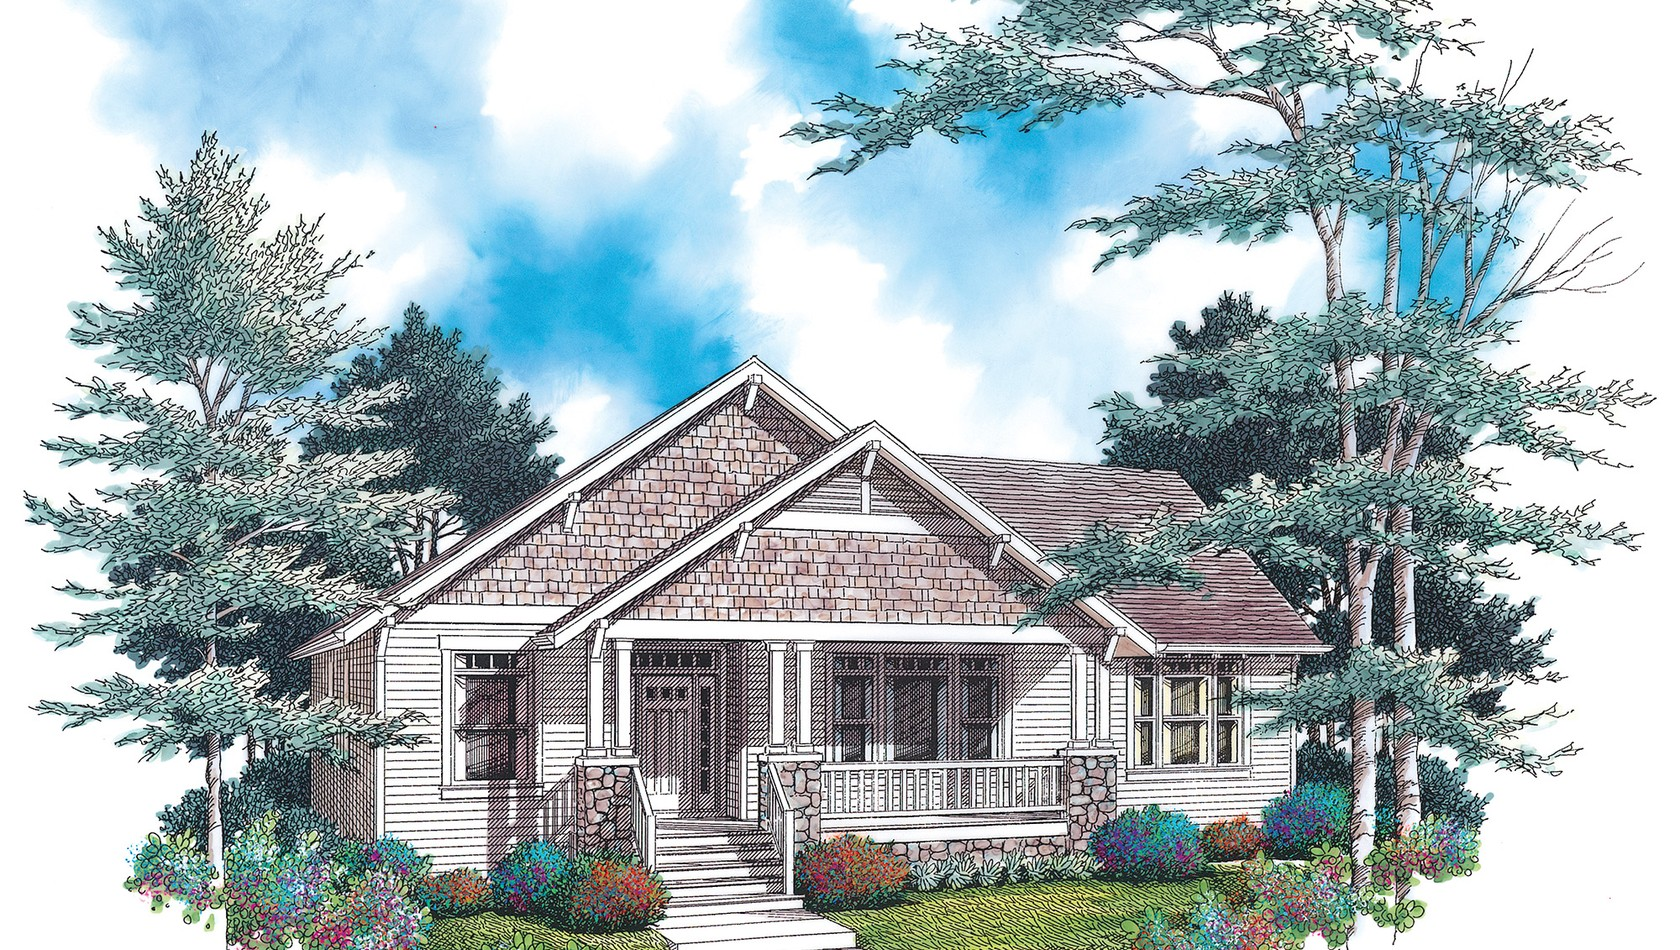 Main image for house plan 1142A: The Glenhaven